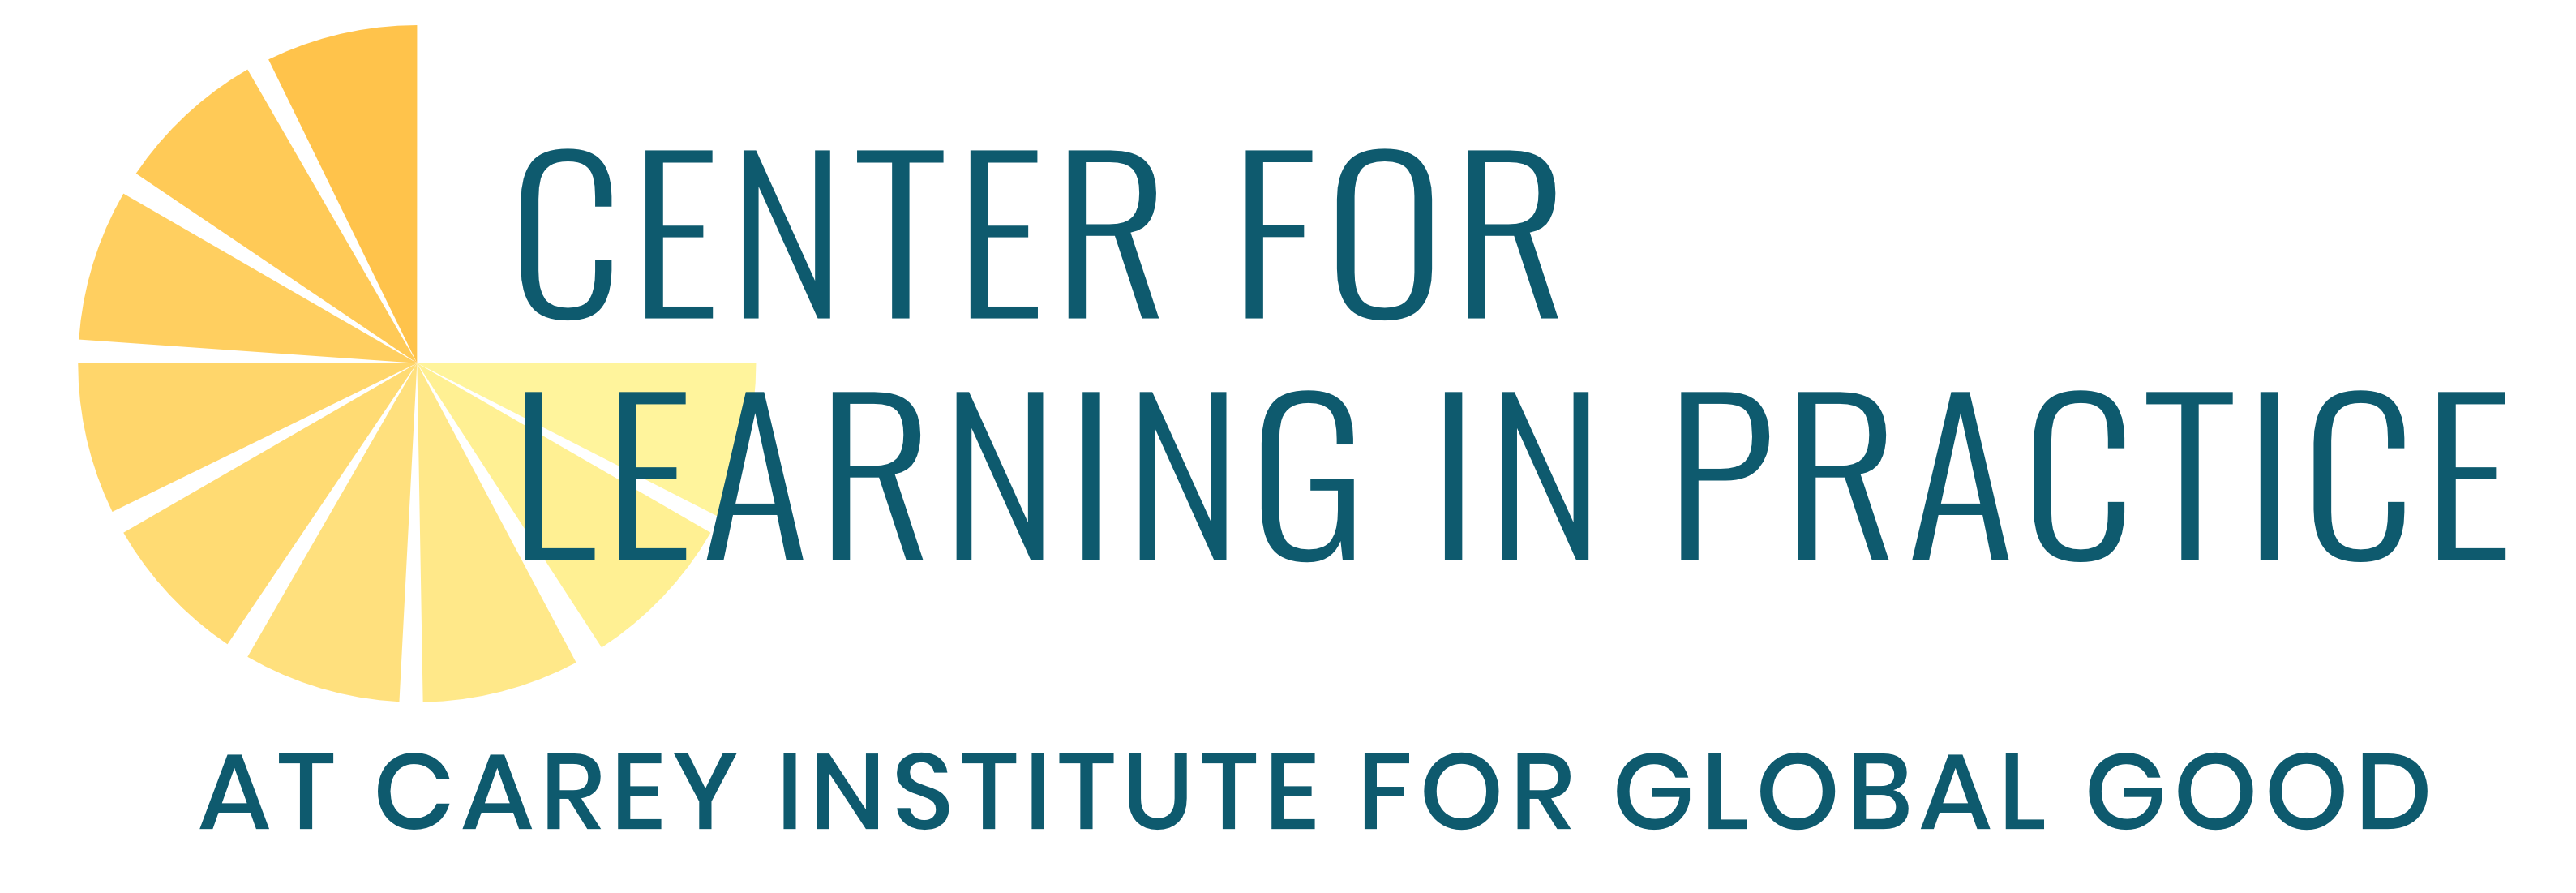 Center for Learning in Practice | Carey Institute for Global Good